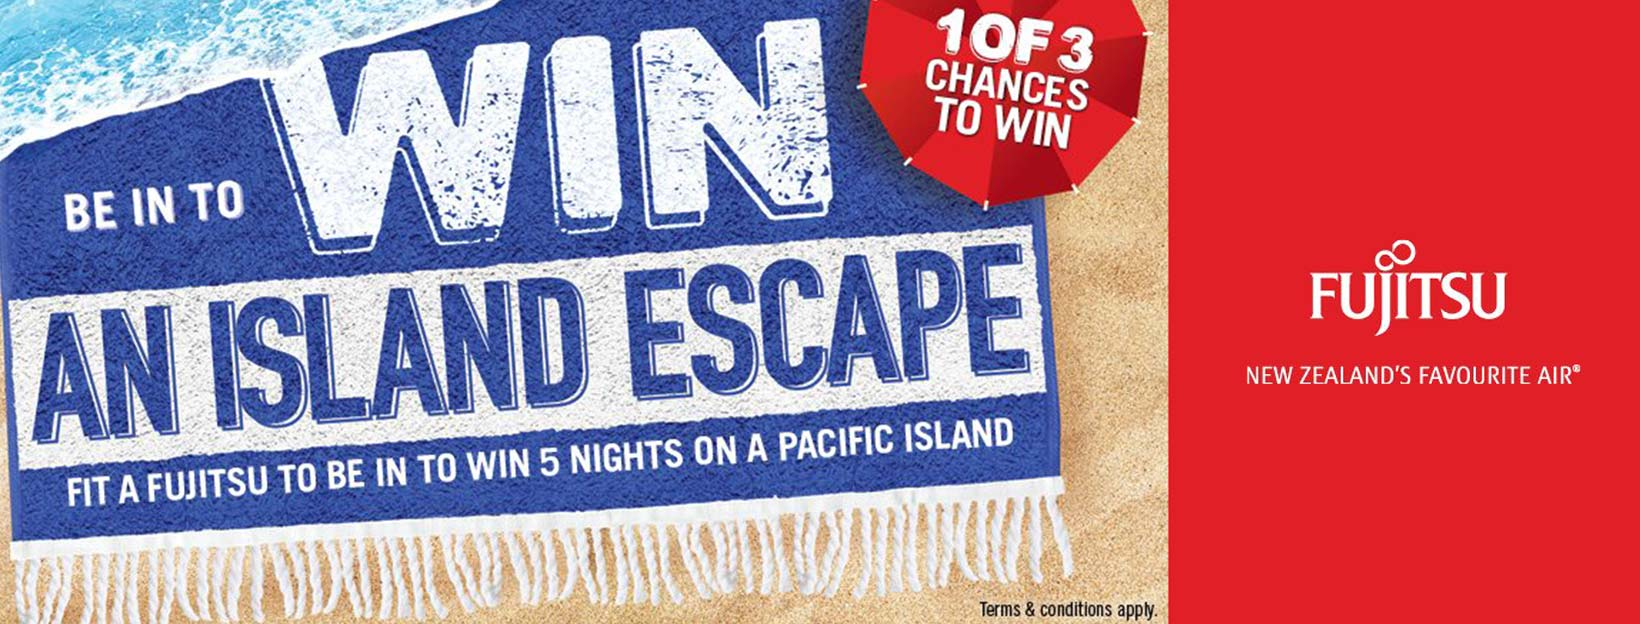 https://www.fujitsugeneral.co.nz/2019-island-escape